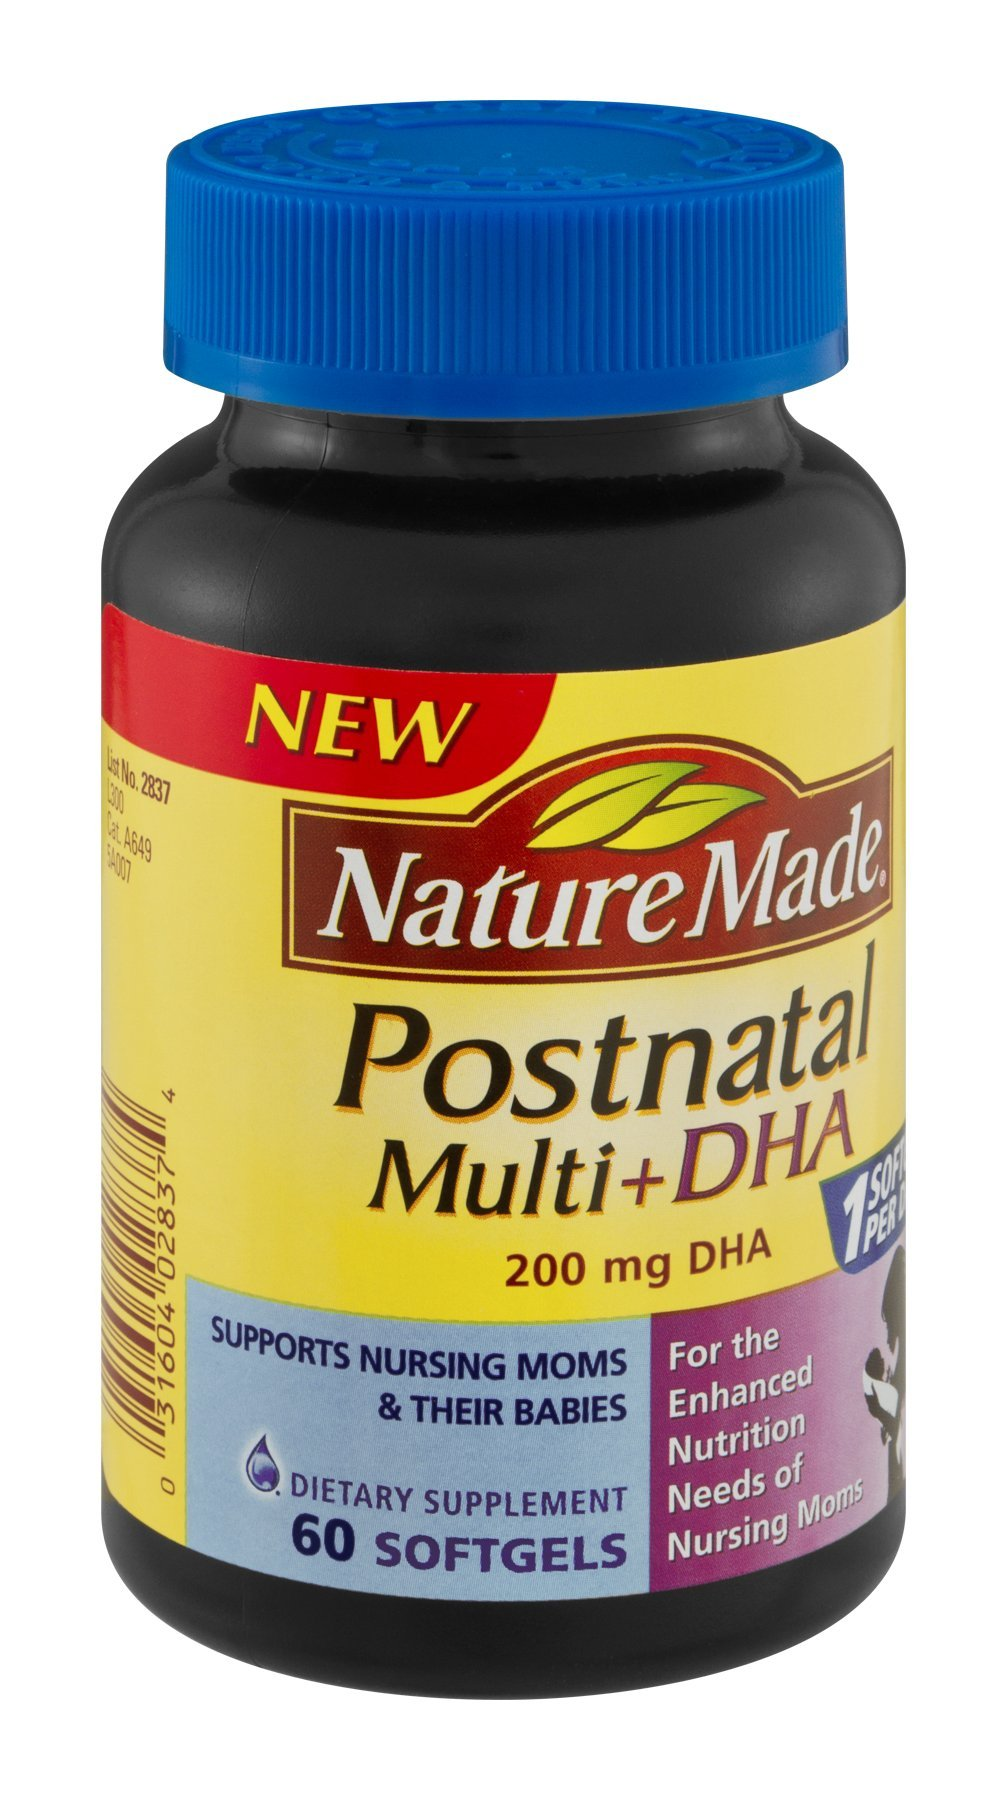 Nature Made Postnatal Multi+DHA 200mg Dietary Supplement Softgels , 60 CT (Pack of 3)